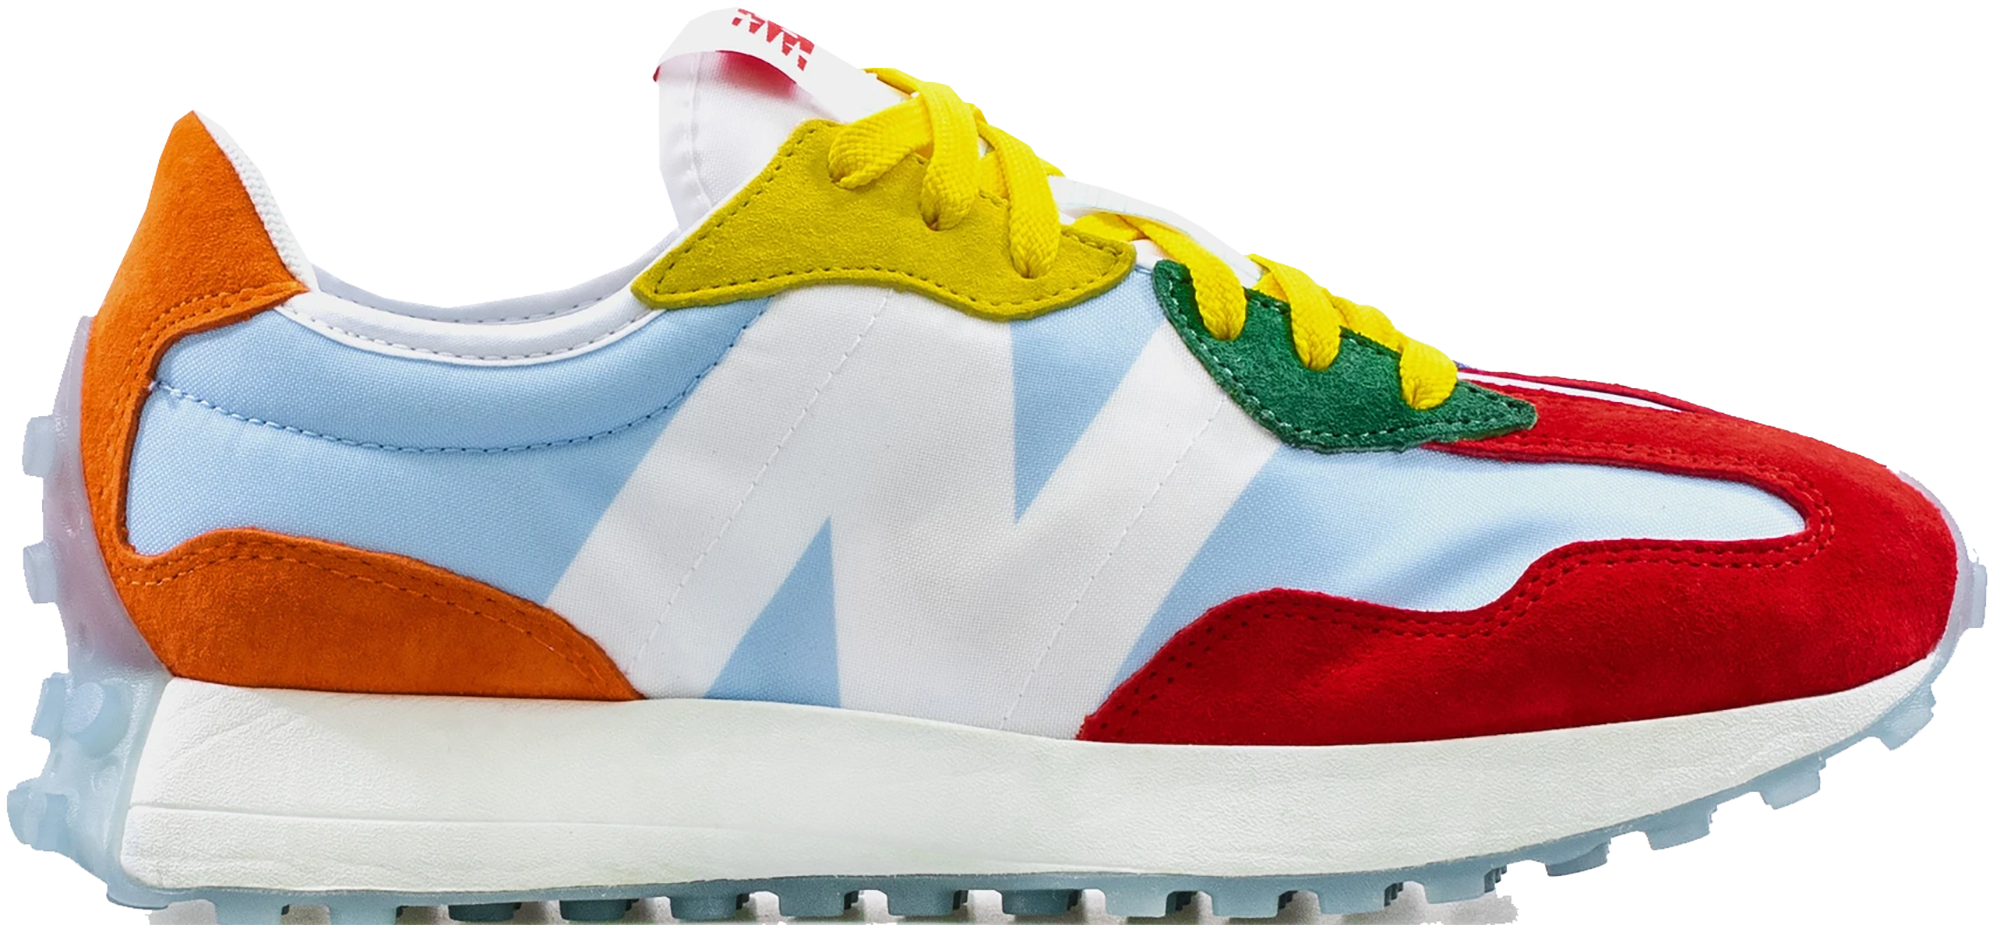 New Balance Size 16 Shoes - Release Date